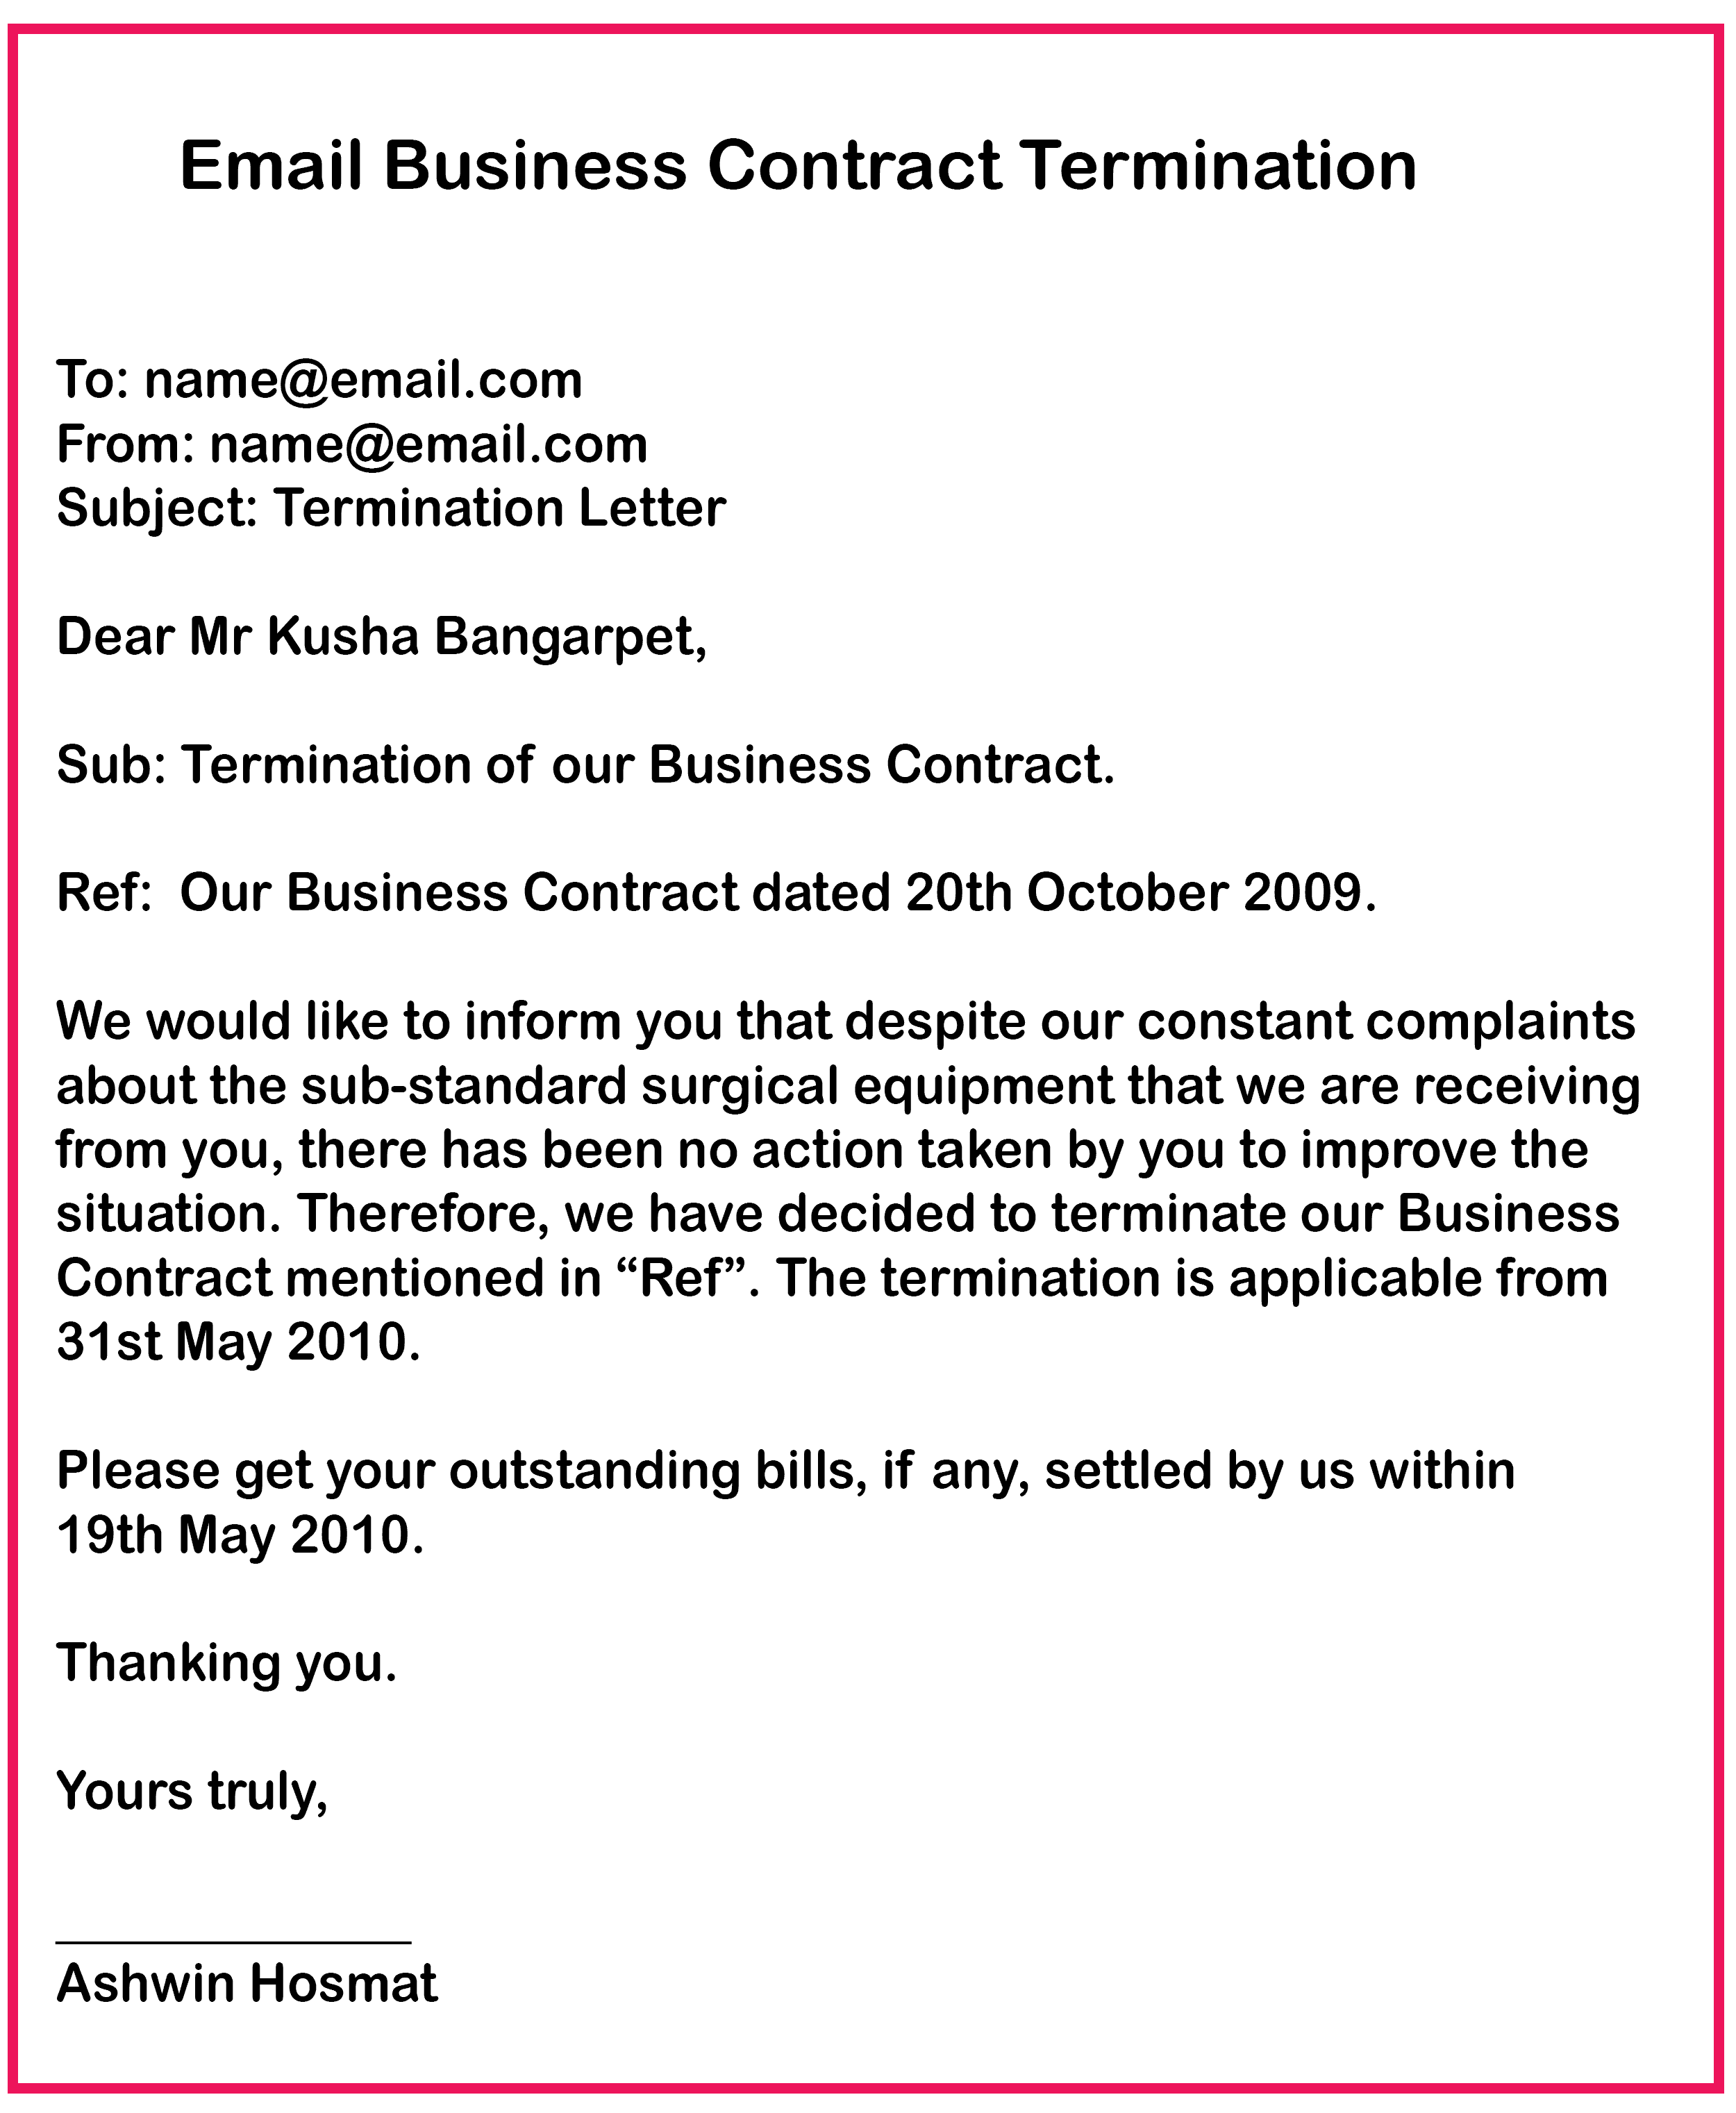 Business Contract Termination email